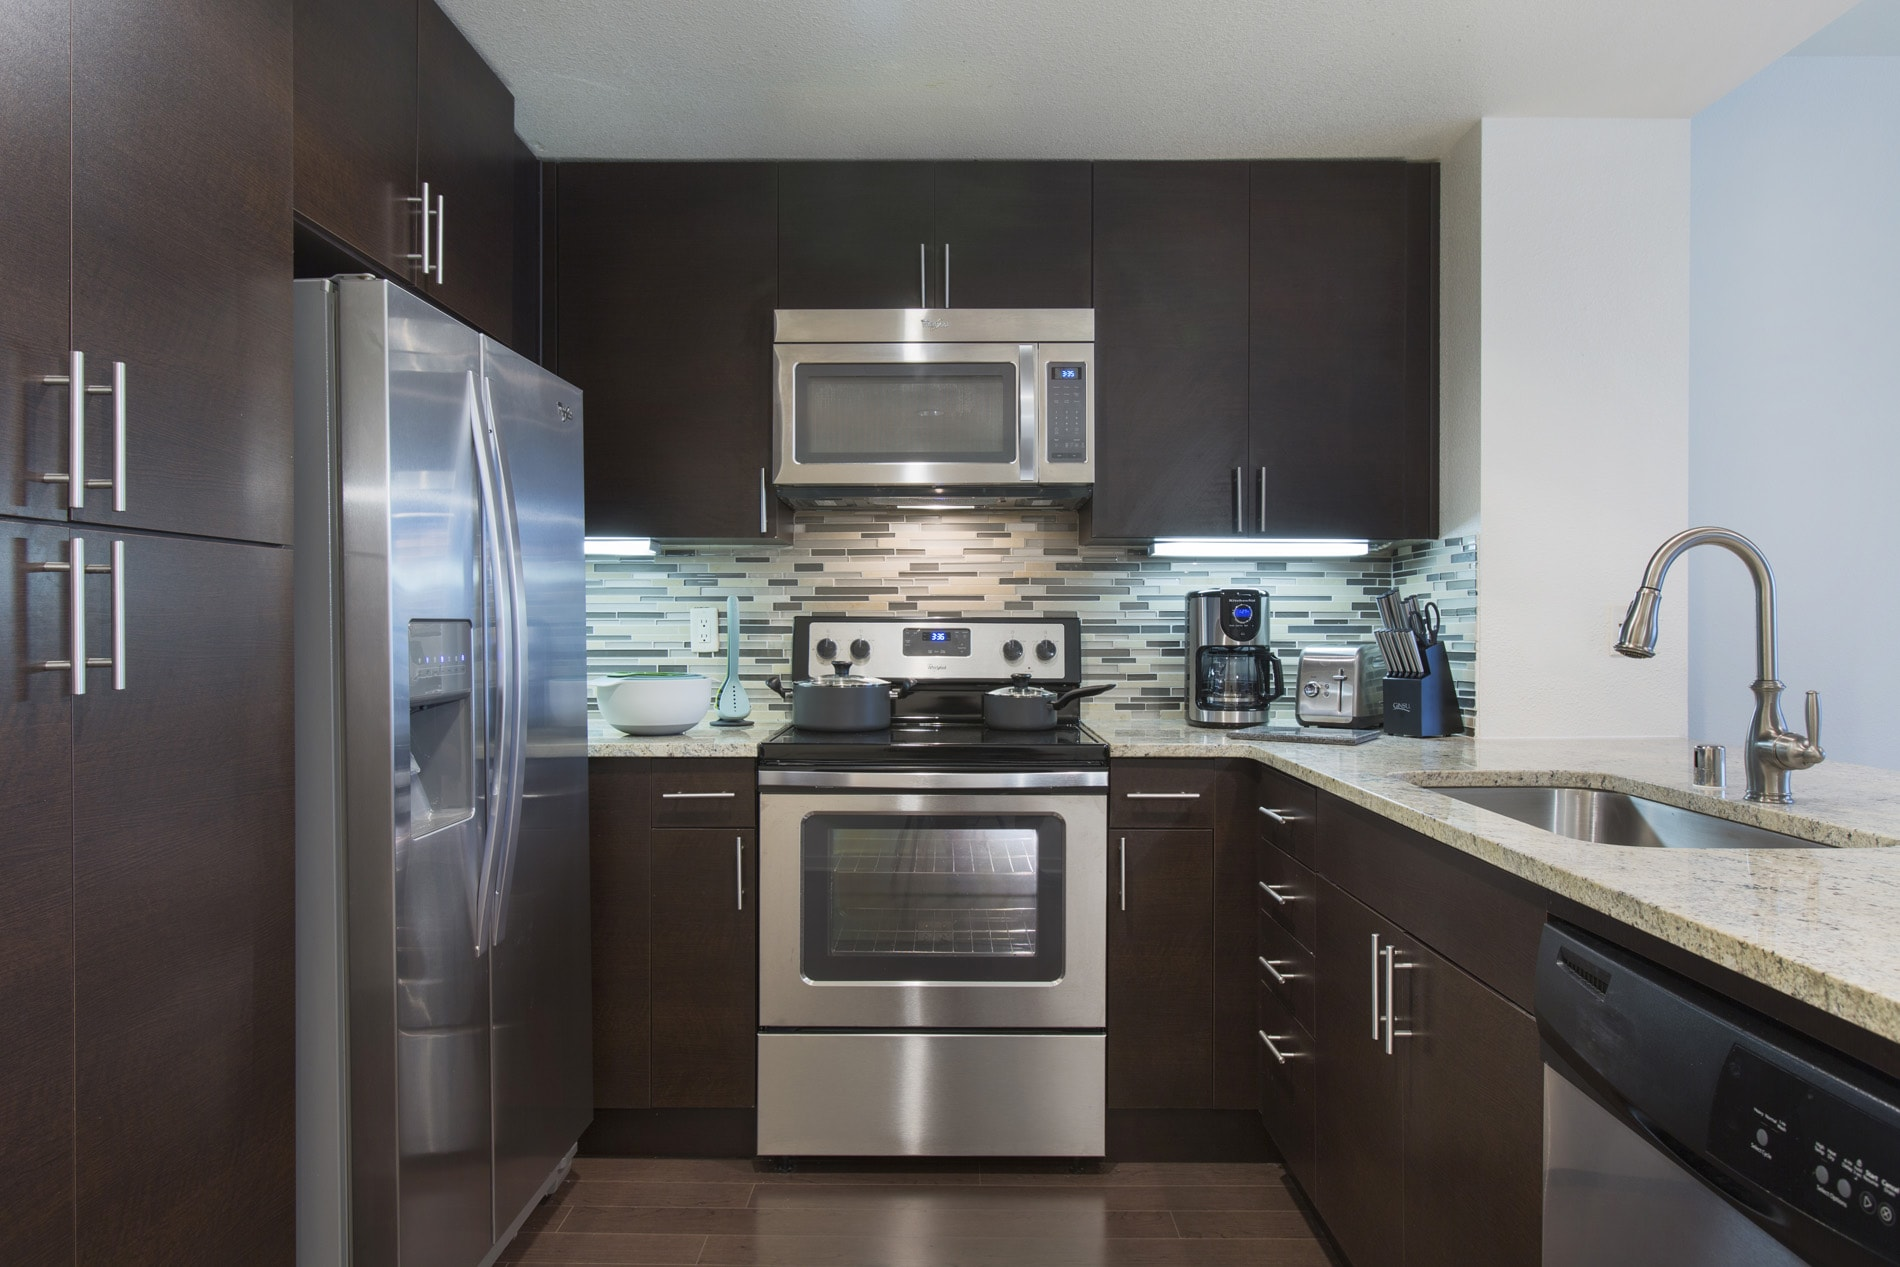 388 Beale Serviced Apartment-Sample Image of San Francisco, CA Insurance Housing